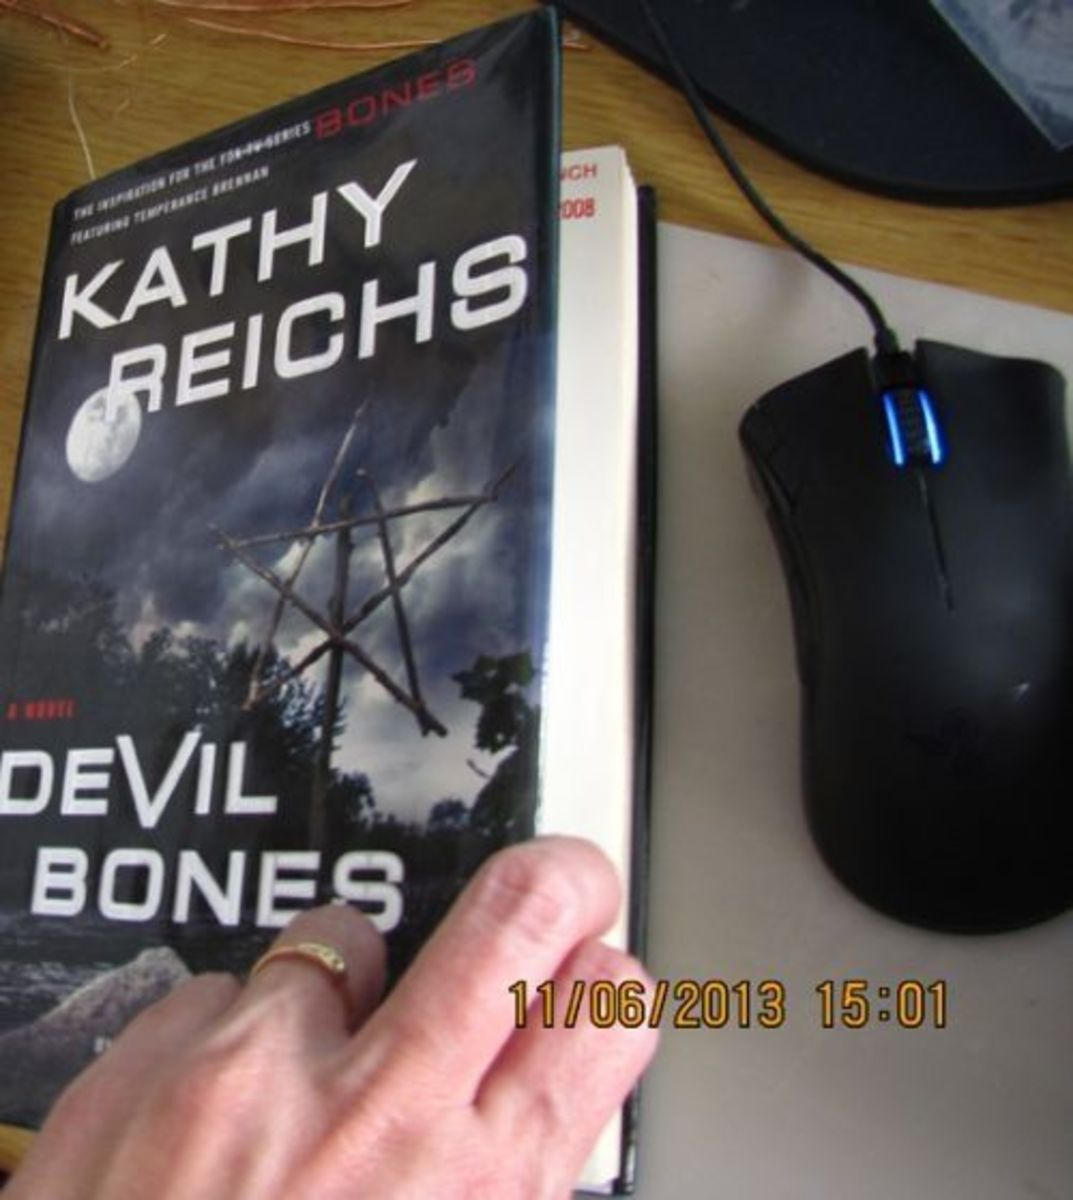 Devil Bones - my hardcover copy